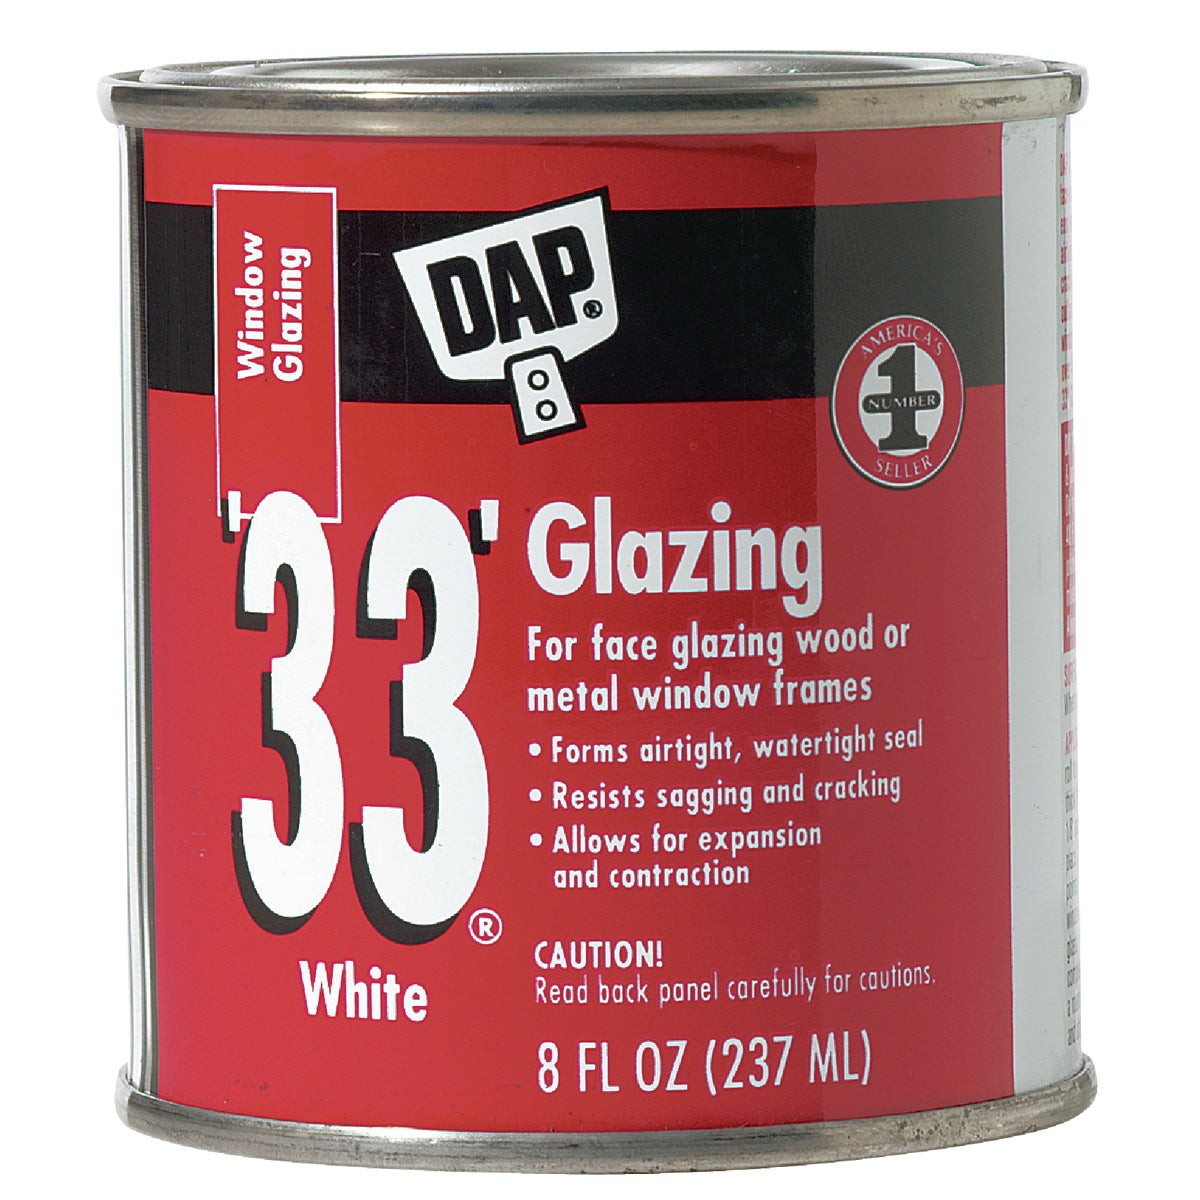 HPT WHT GLAZING COMPOUND - 12120 by Dap Inc